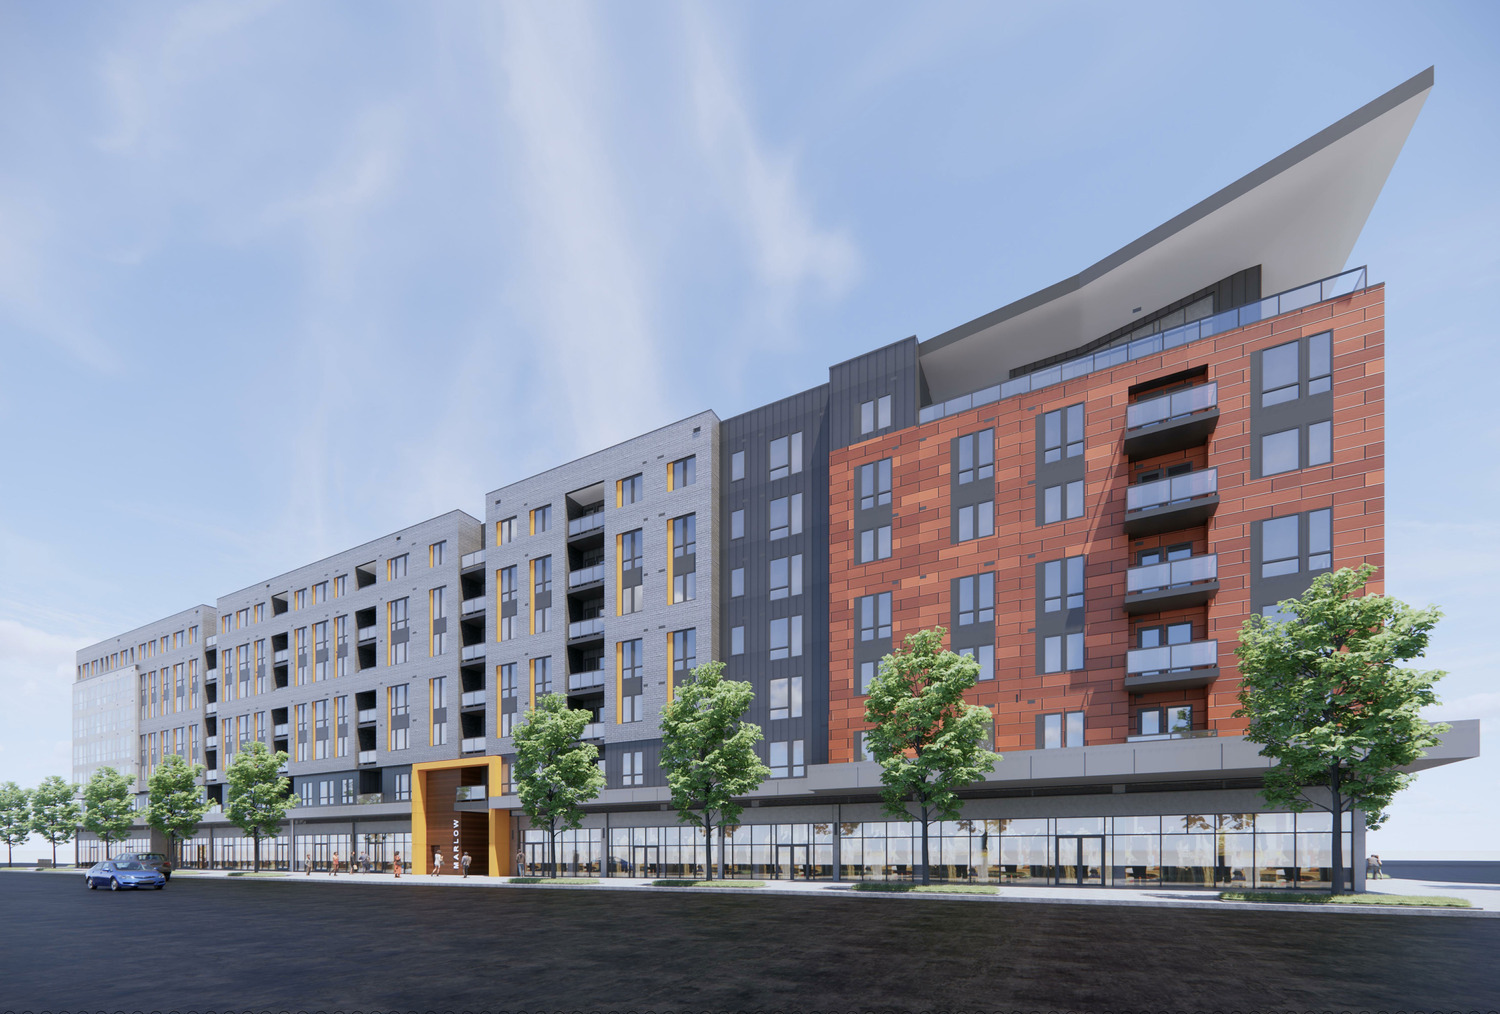 CBG builds Marlow, a 472-Unit, LEED® Platinum Luxury Apartment Community with Retail in Columbia, MD - Image #1